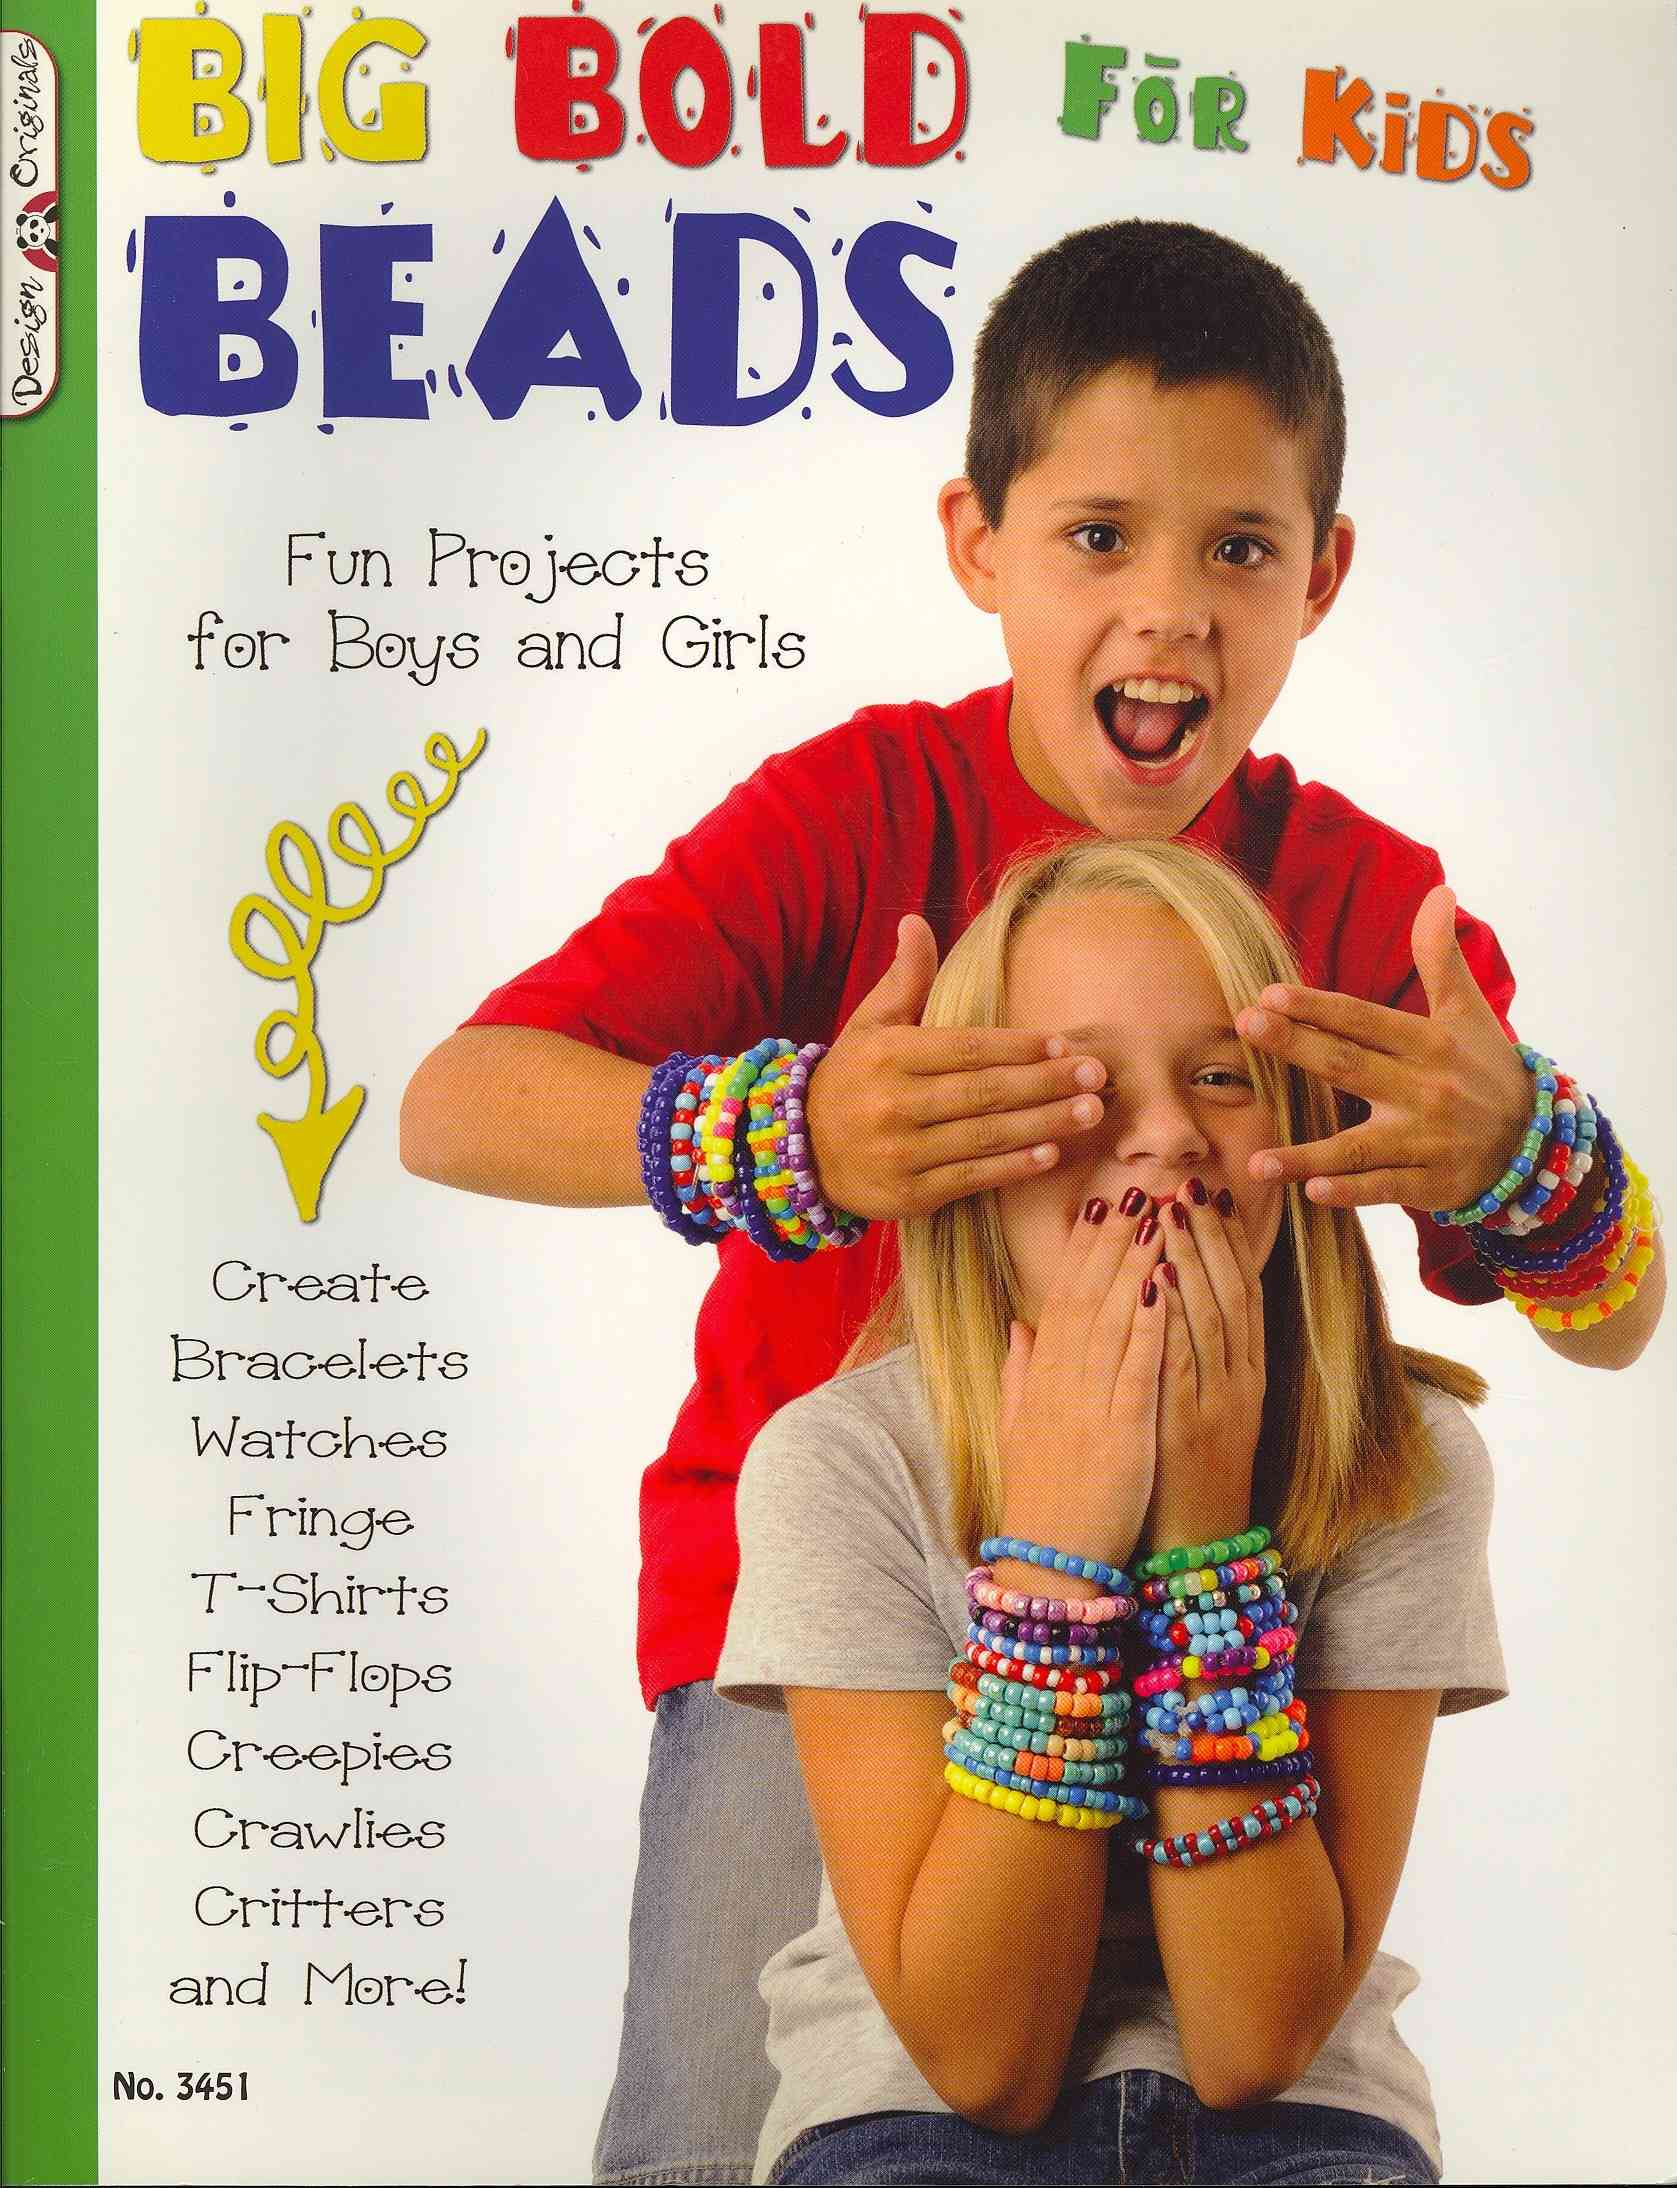 Big Bold Beads for Kids By McNeill, Suzanne